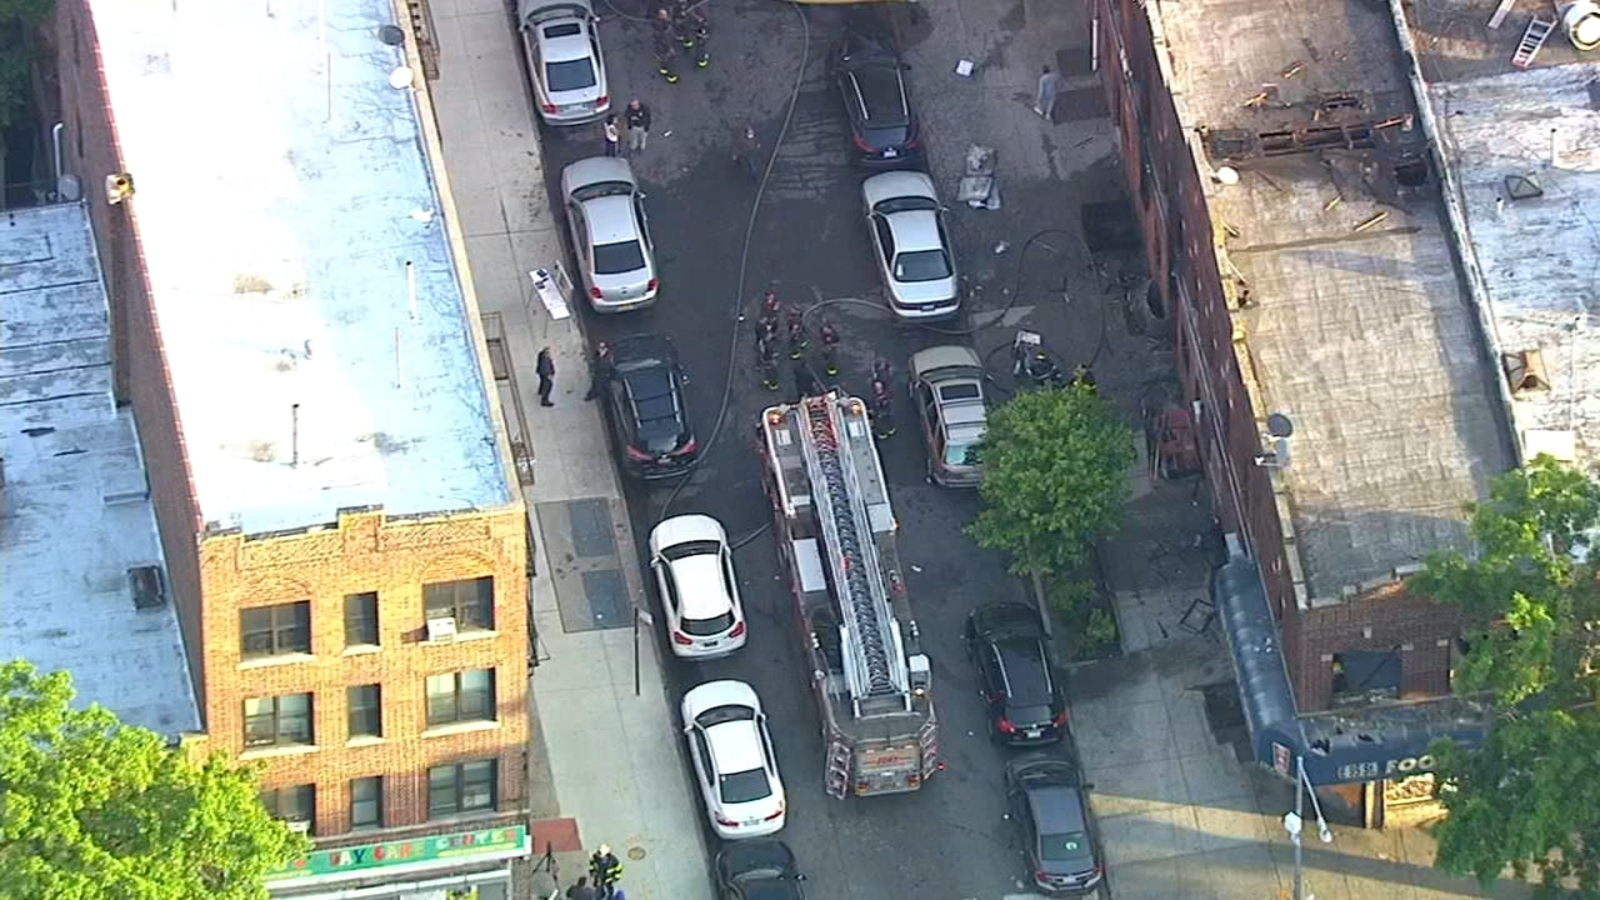 Man arrested in connection with Brooklyn fire that injured 8, charged with assault